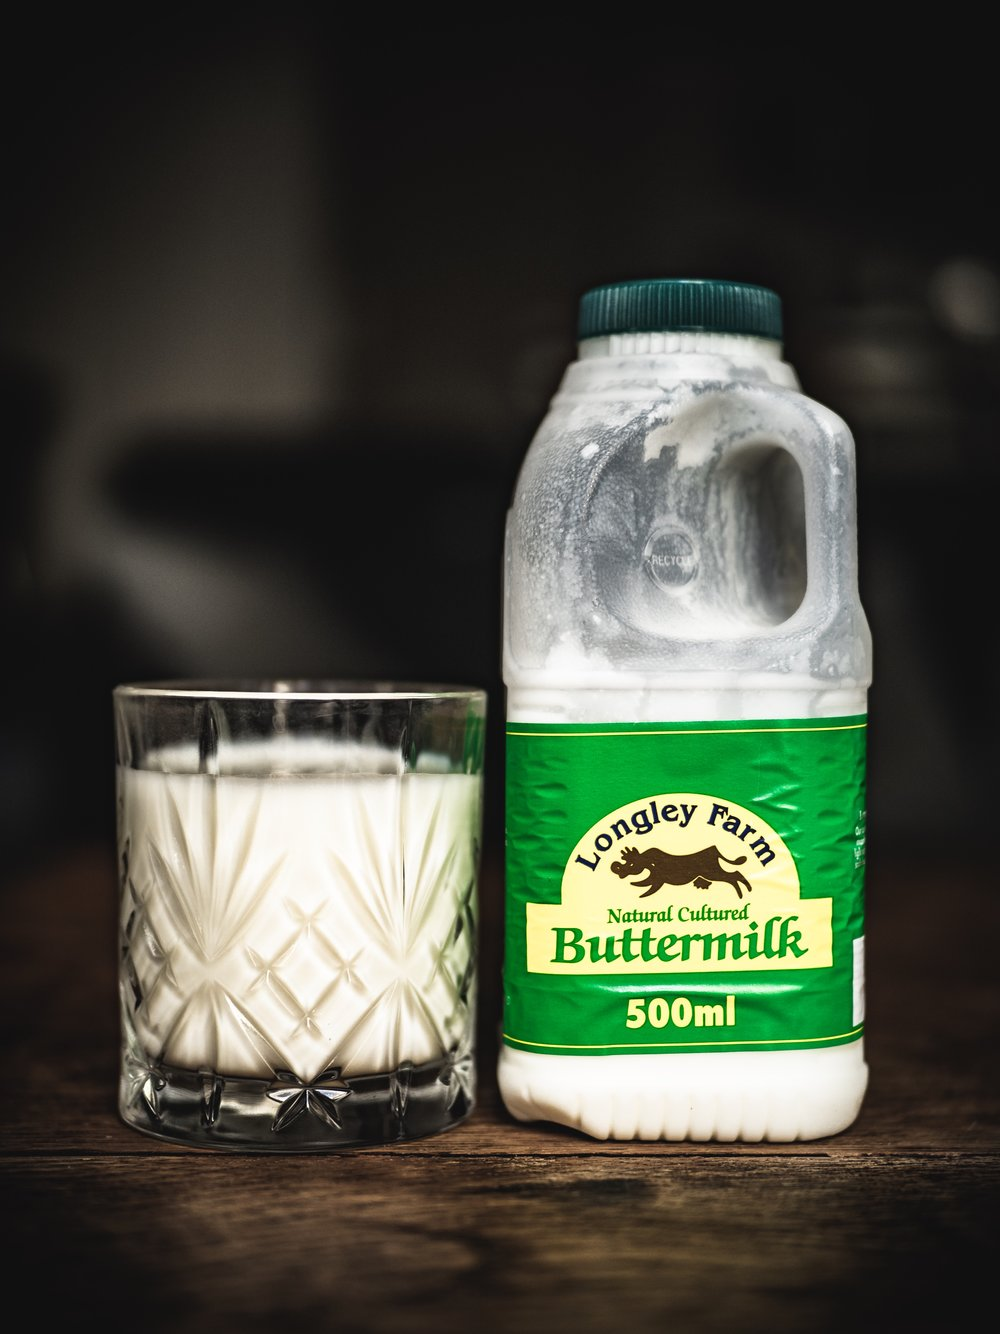 My first time drinking Buttermilk